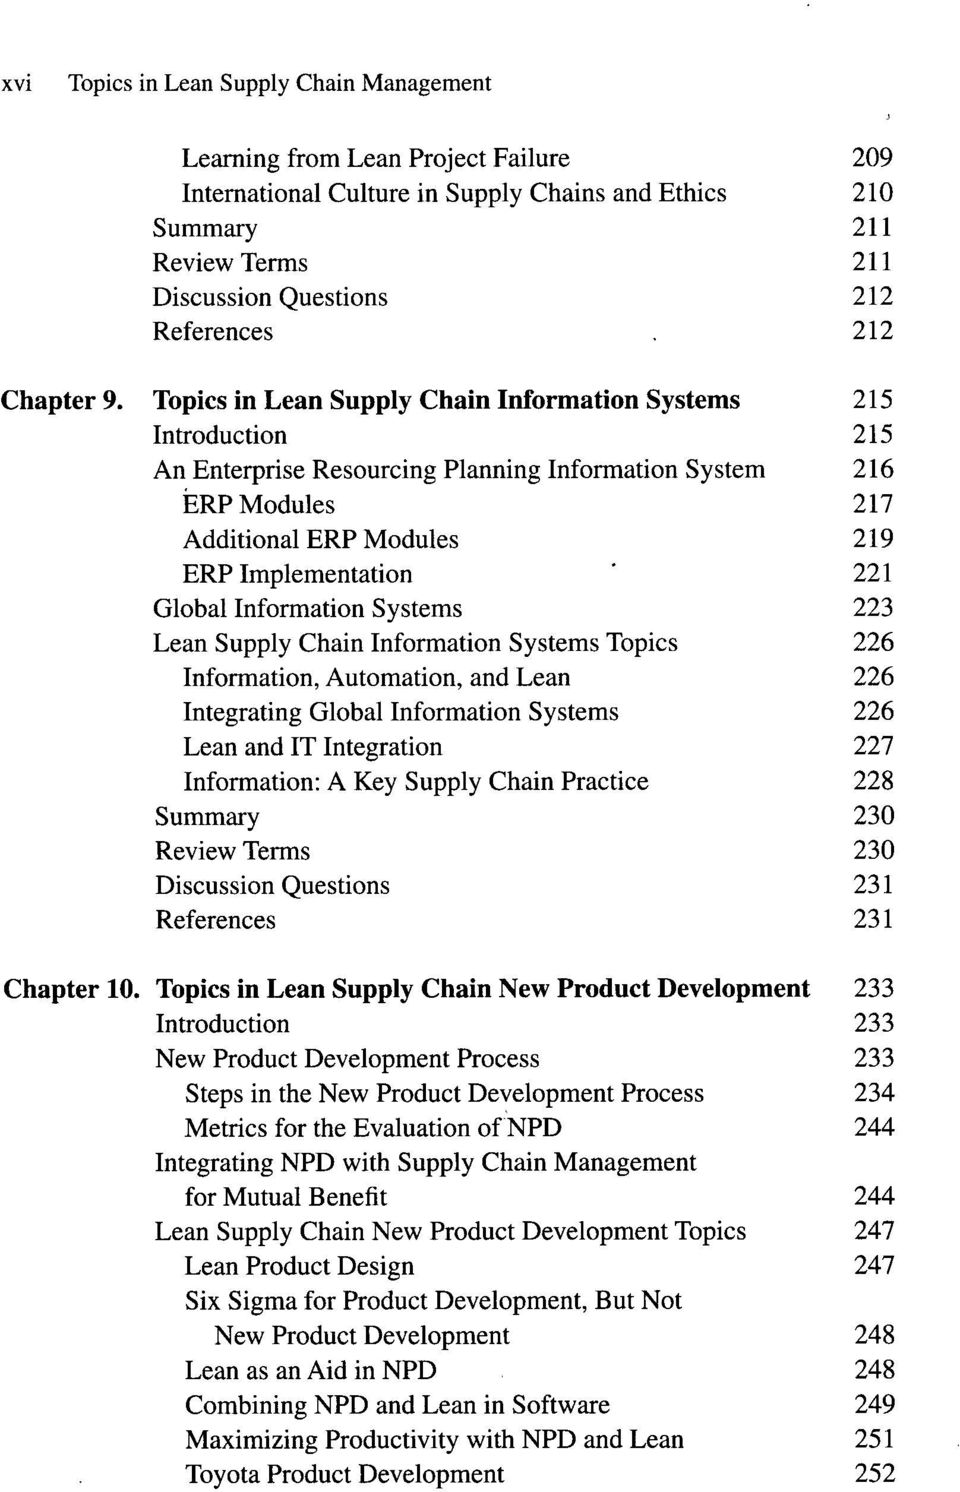 Global Information Systems 223 Lean Supply Chain Information Systems Topics 226 Information, Automation, and Lean 226 Integrating Global Information Systems 226 Lean and IT Integration 227